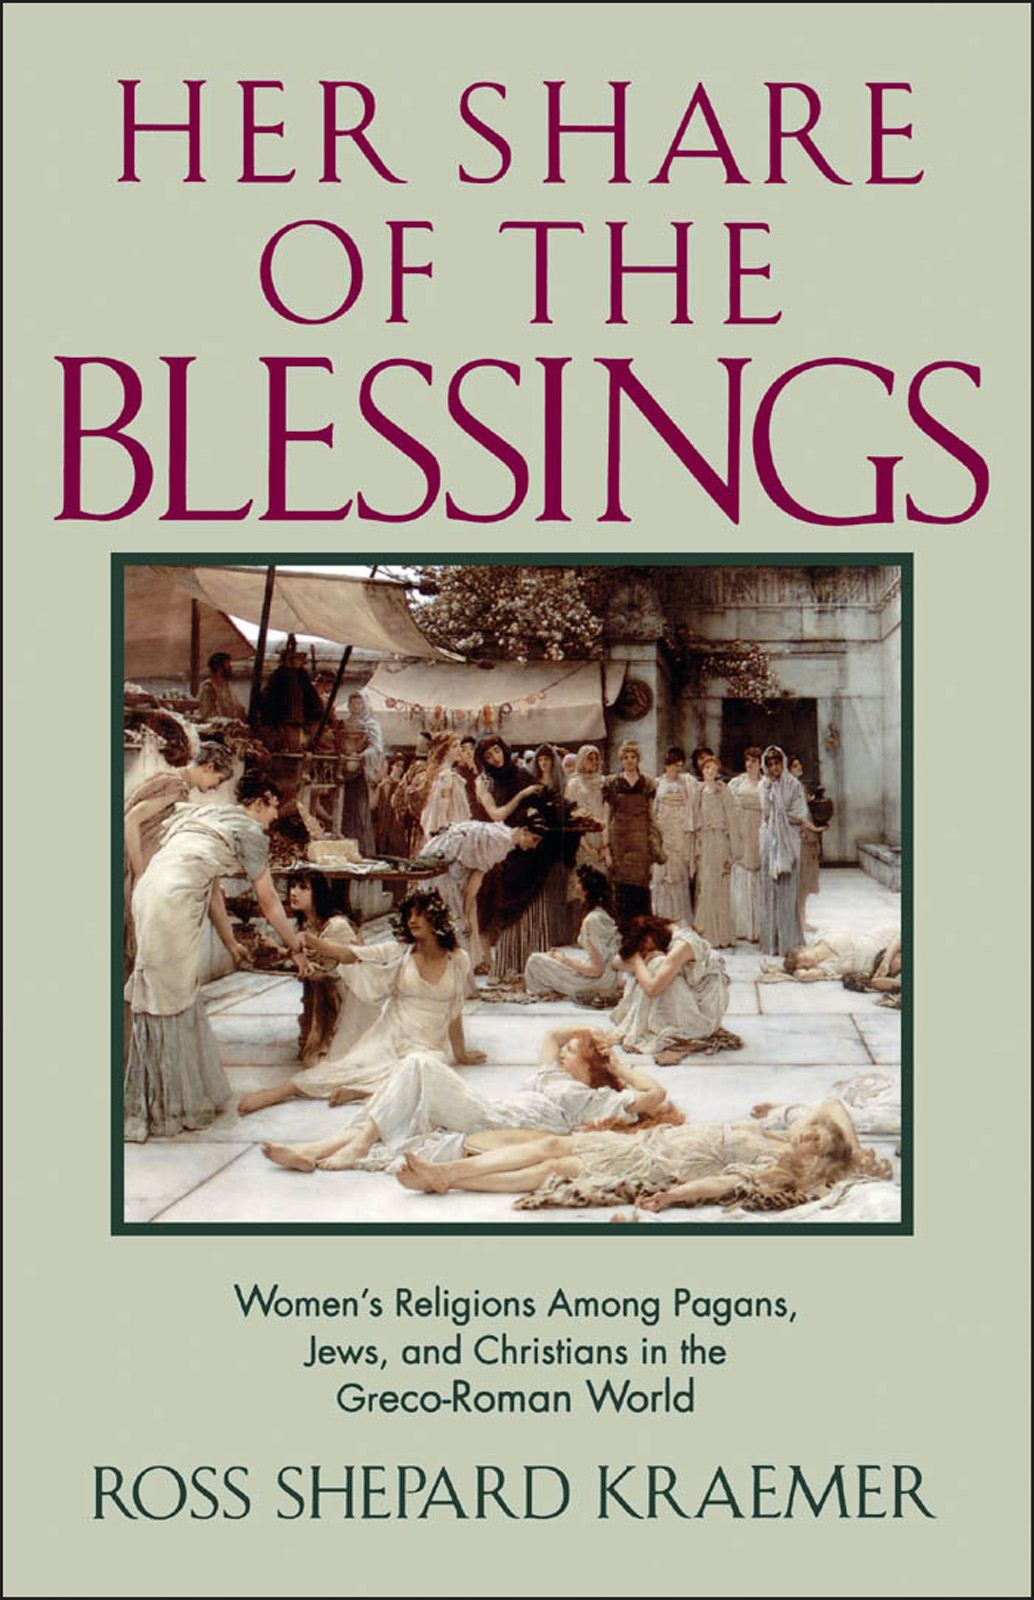 Her Share of the Blessings : Women's Religions among Pagans Jews and Christians in the Greco-Roman World